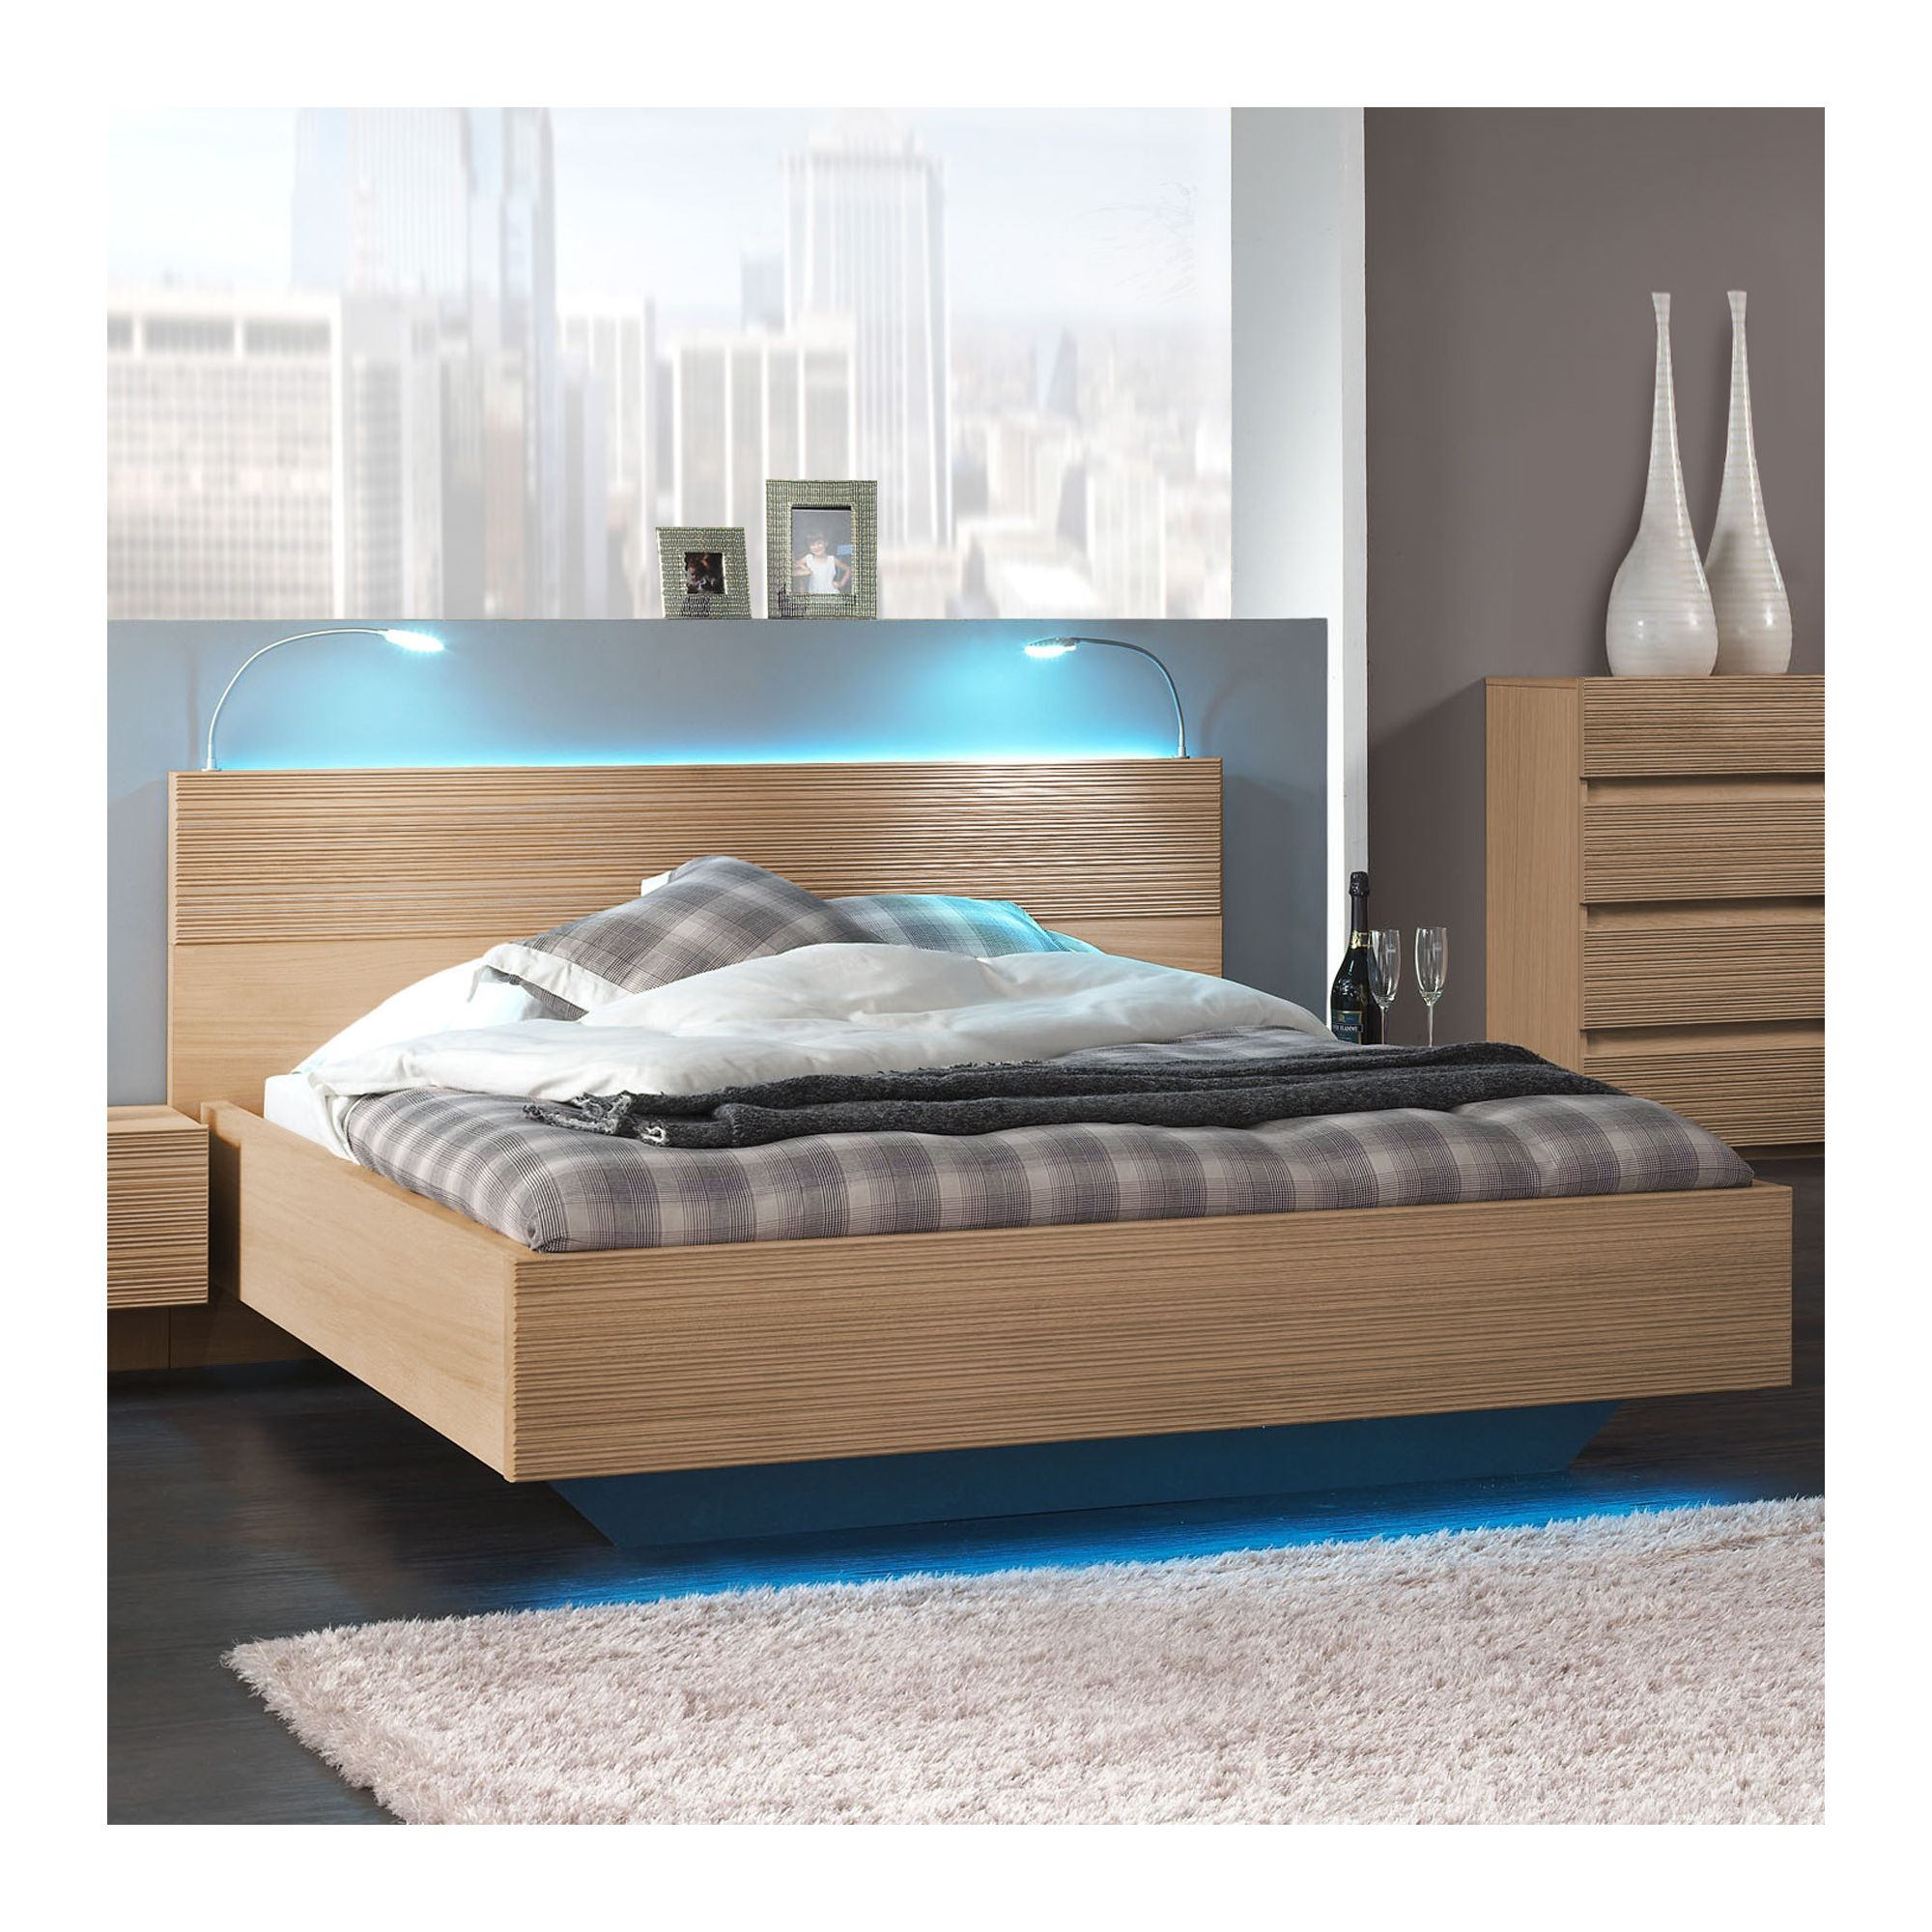 Sleepline Diva Bed - Mat Lacquered - European King at Tesco Direct